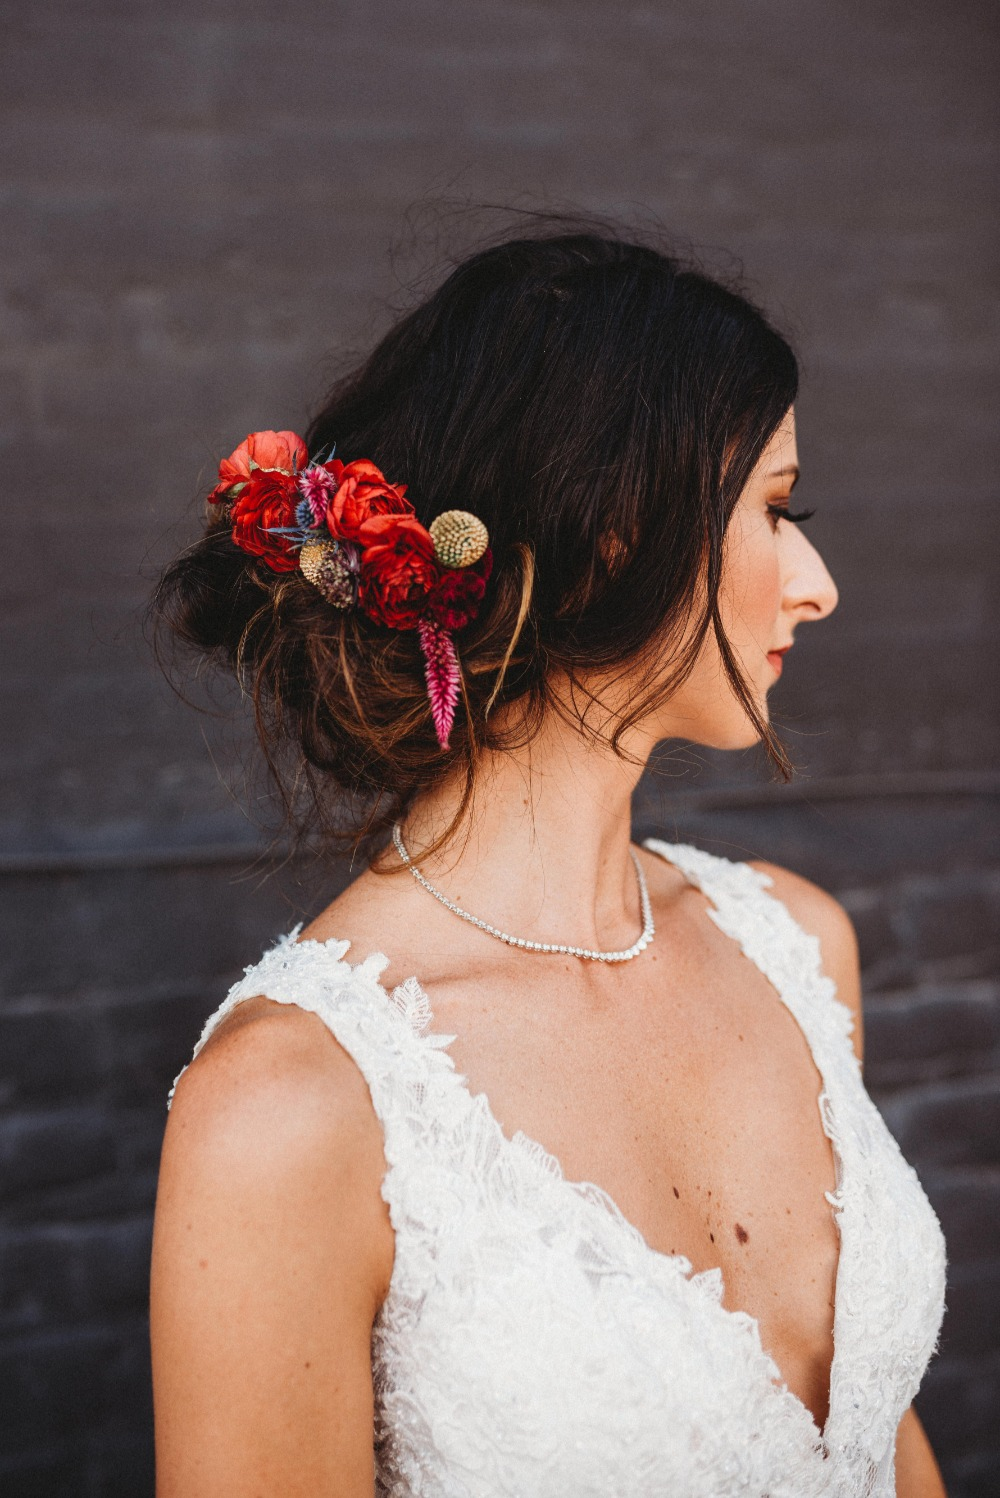 sweet floral hair accessory